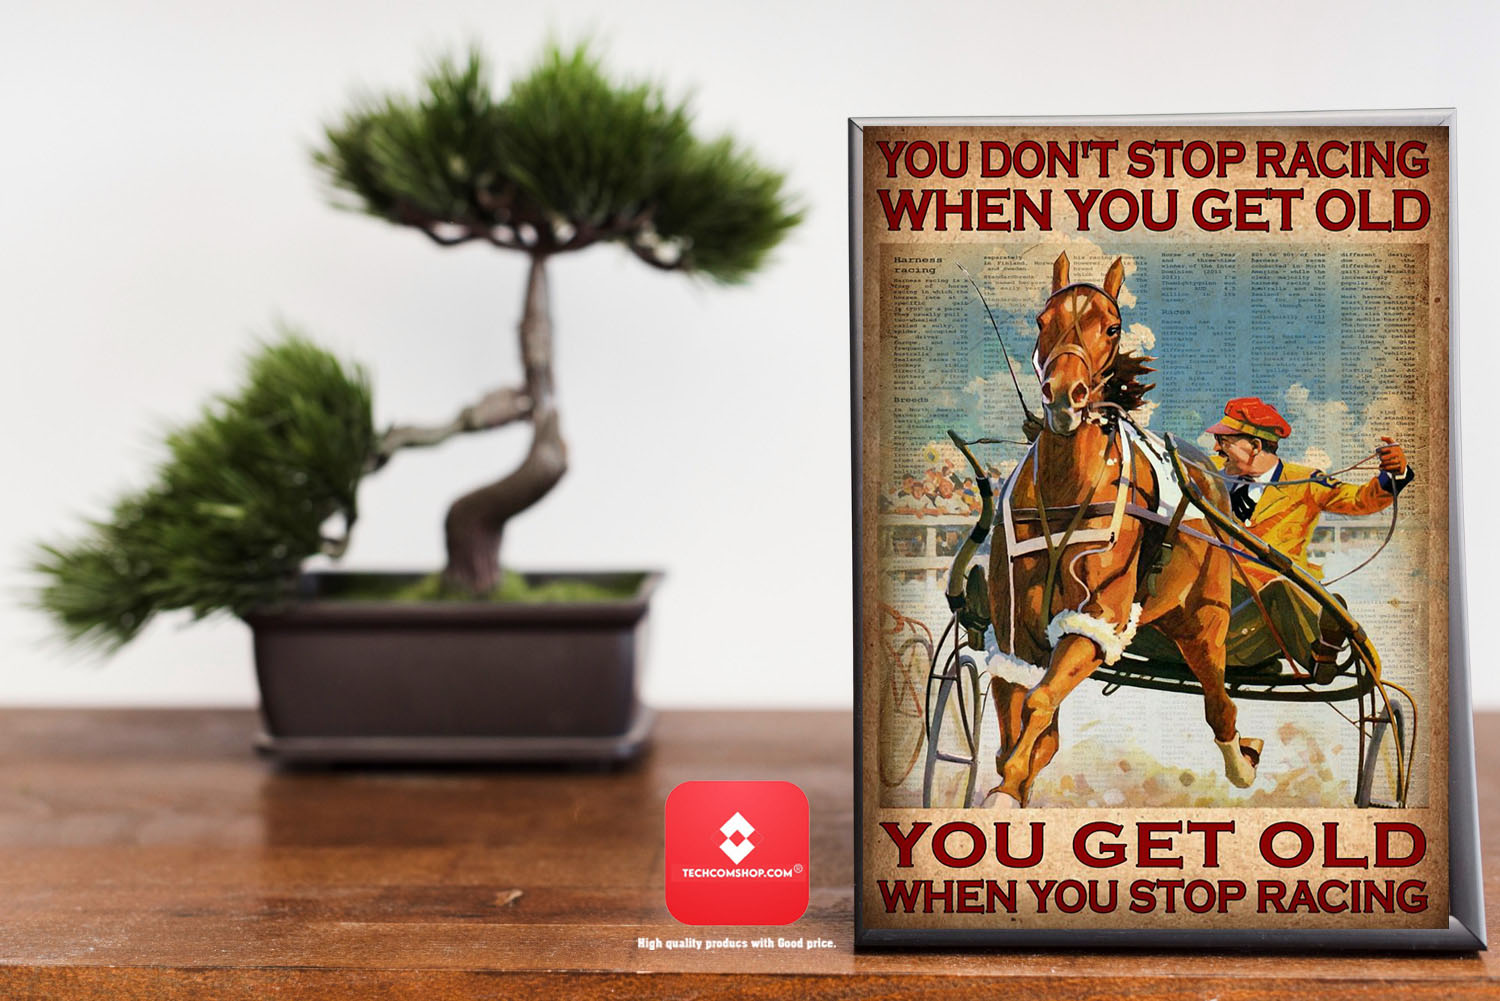 You don't stop racing when you get old poster 7